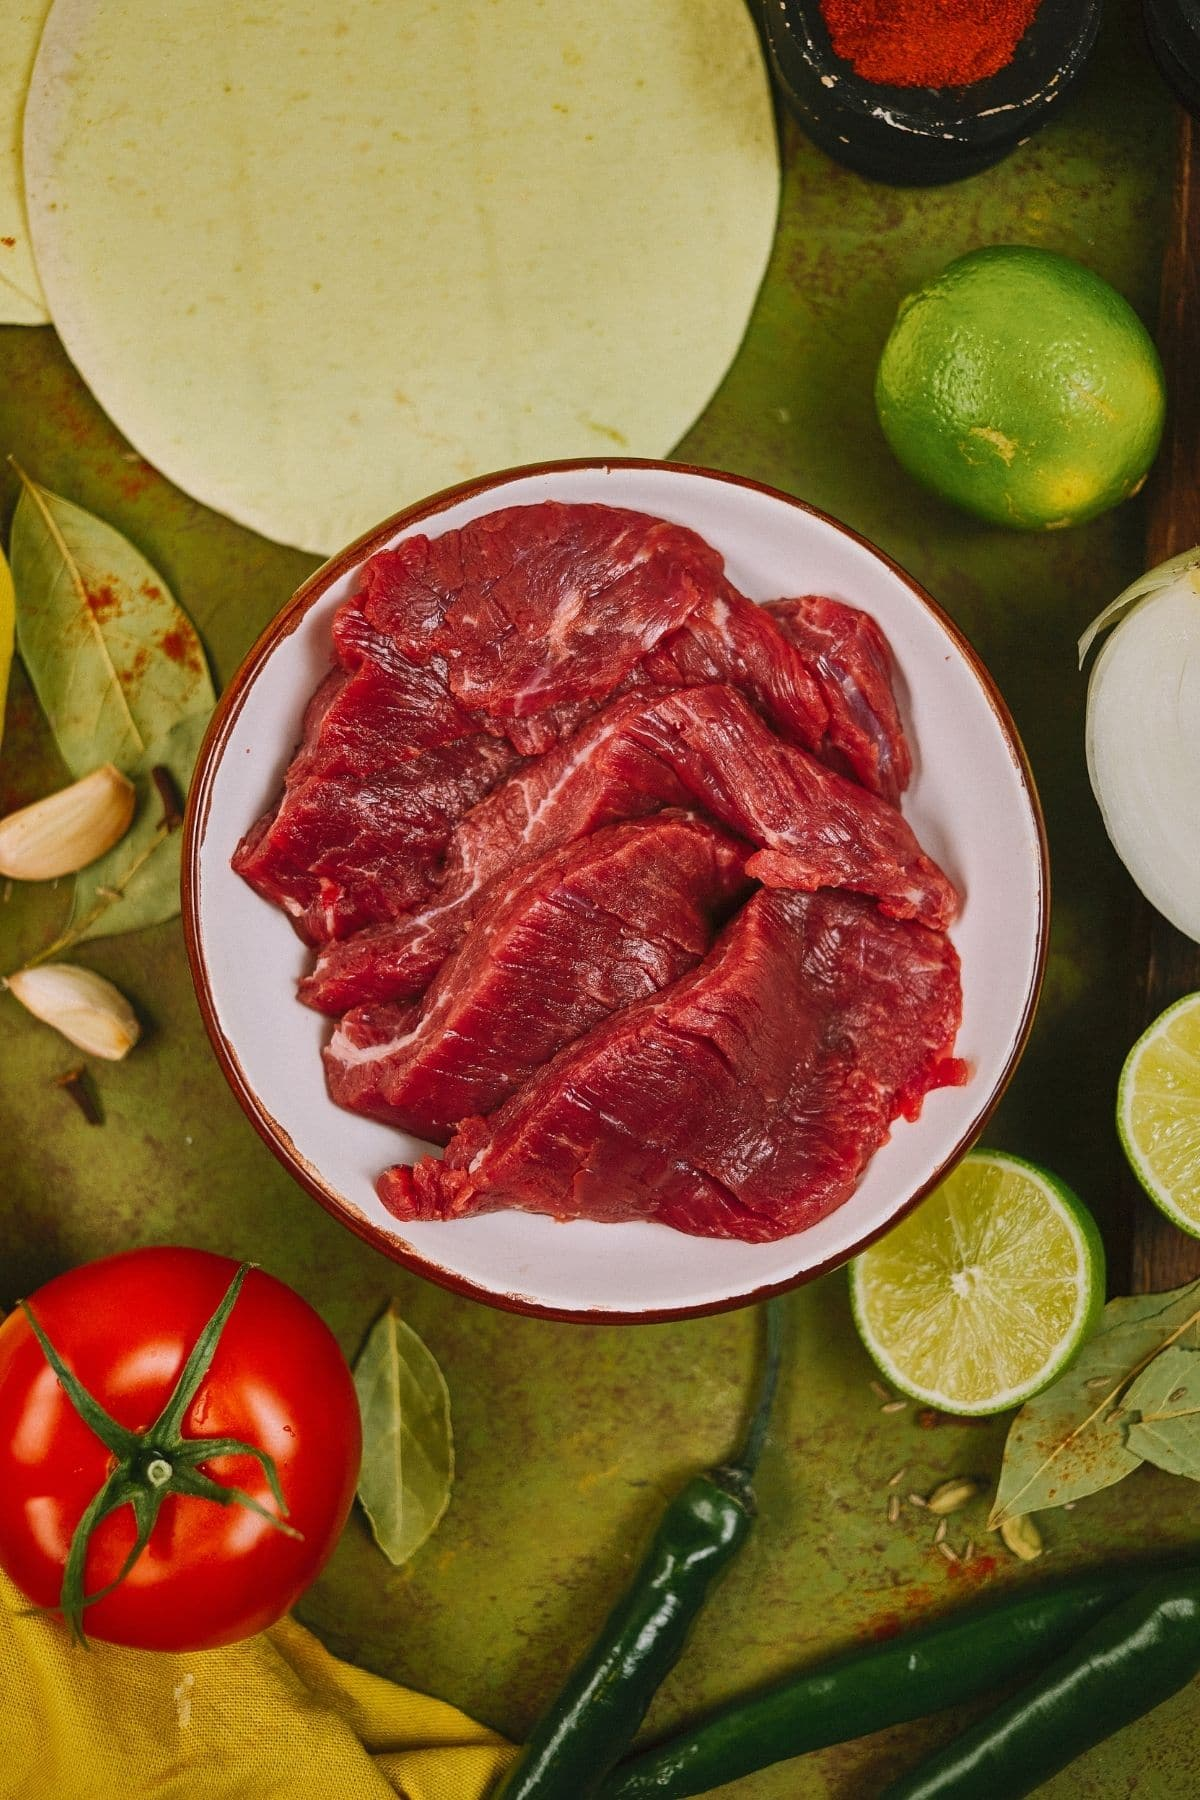 raw steak in white bowl on green table with tomato lime and tortillas